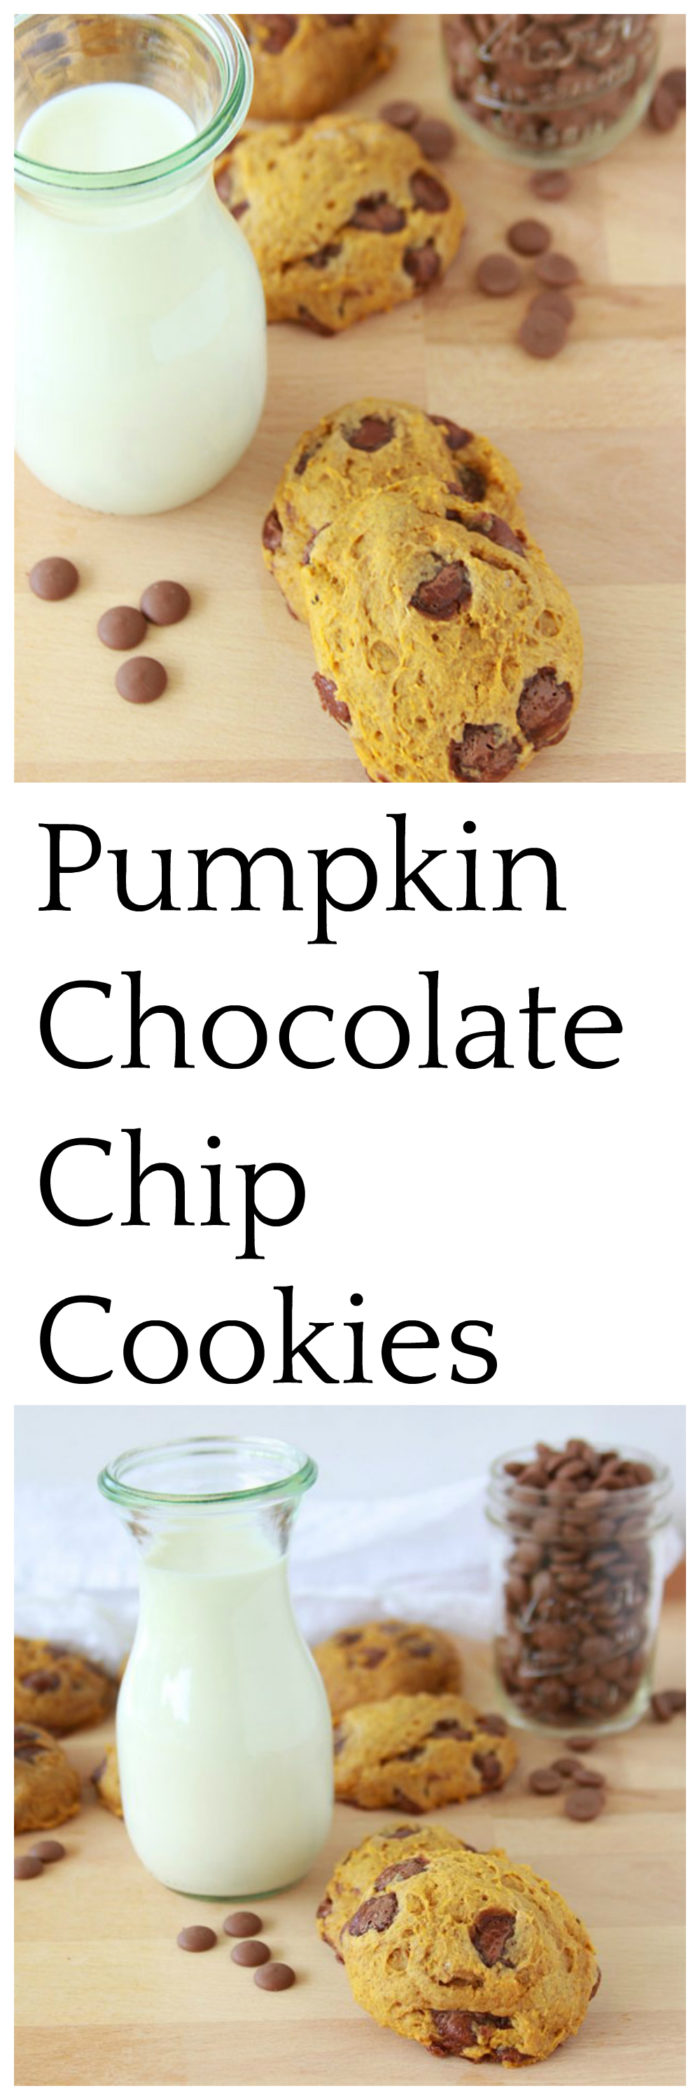 Pumpkin Chocolate Chip Cookies will bring the aromas and flavors of autumn into your kitchen!